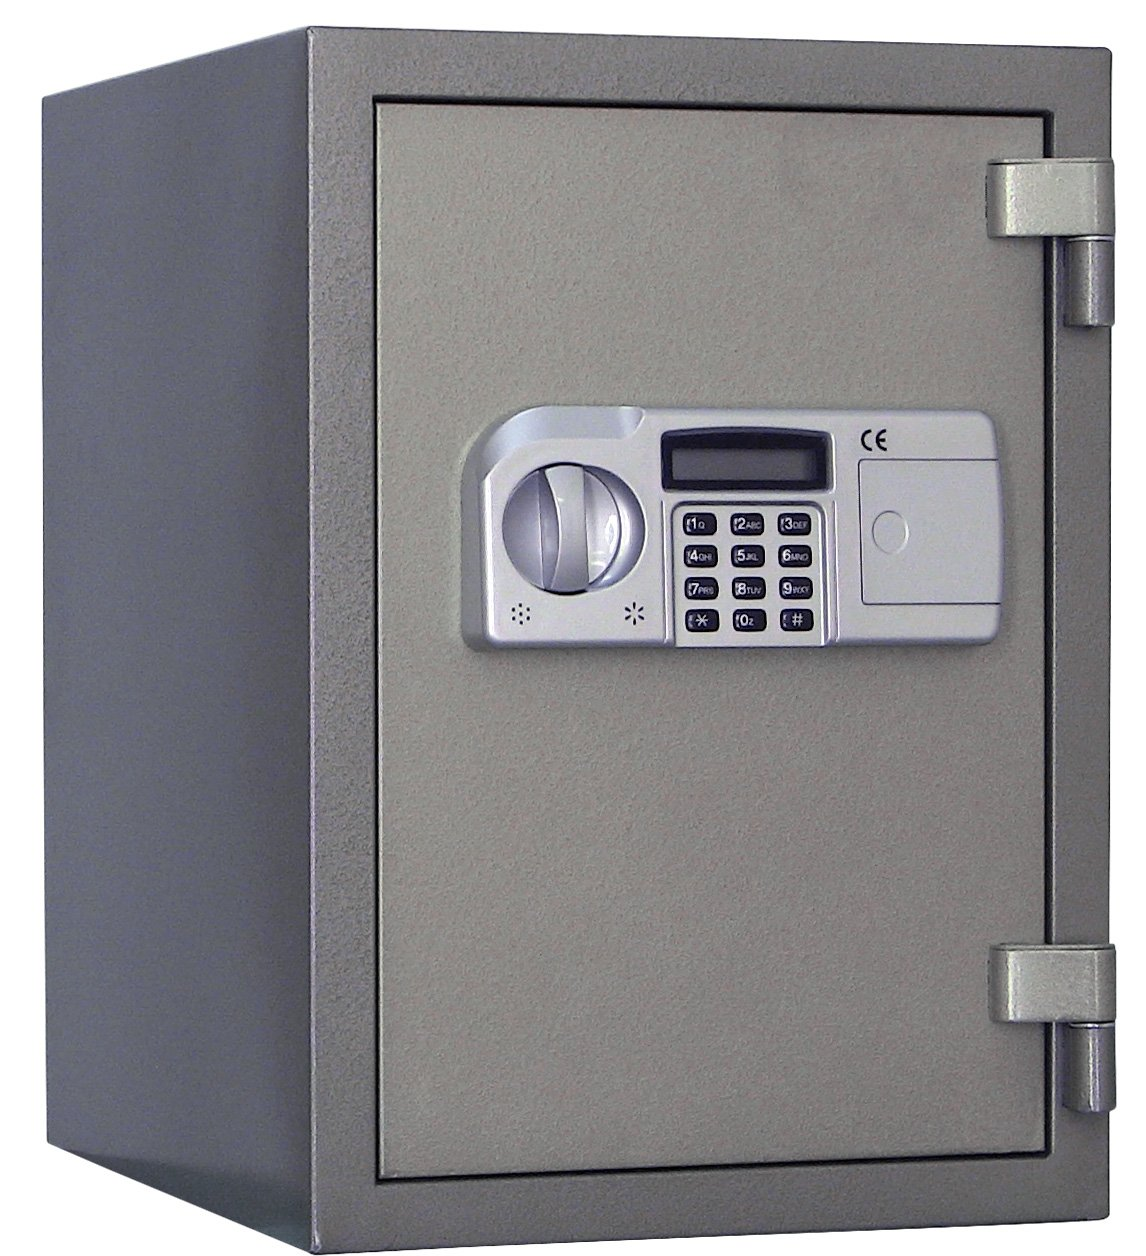 amazoncom steelwater amswel530 2hour fireproof home and document safe sports u0026 outdoors